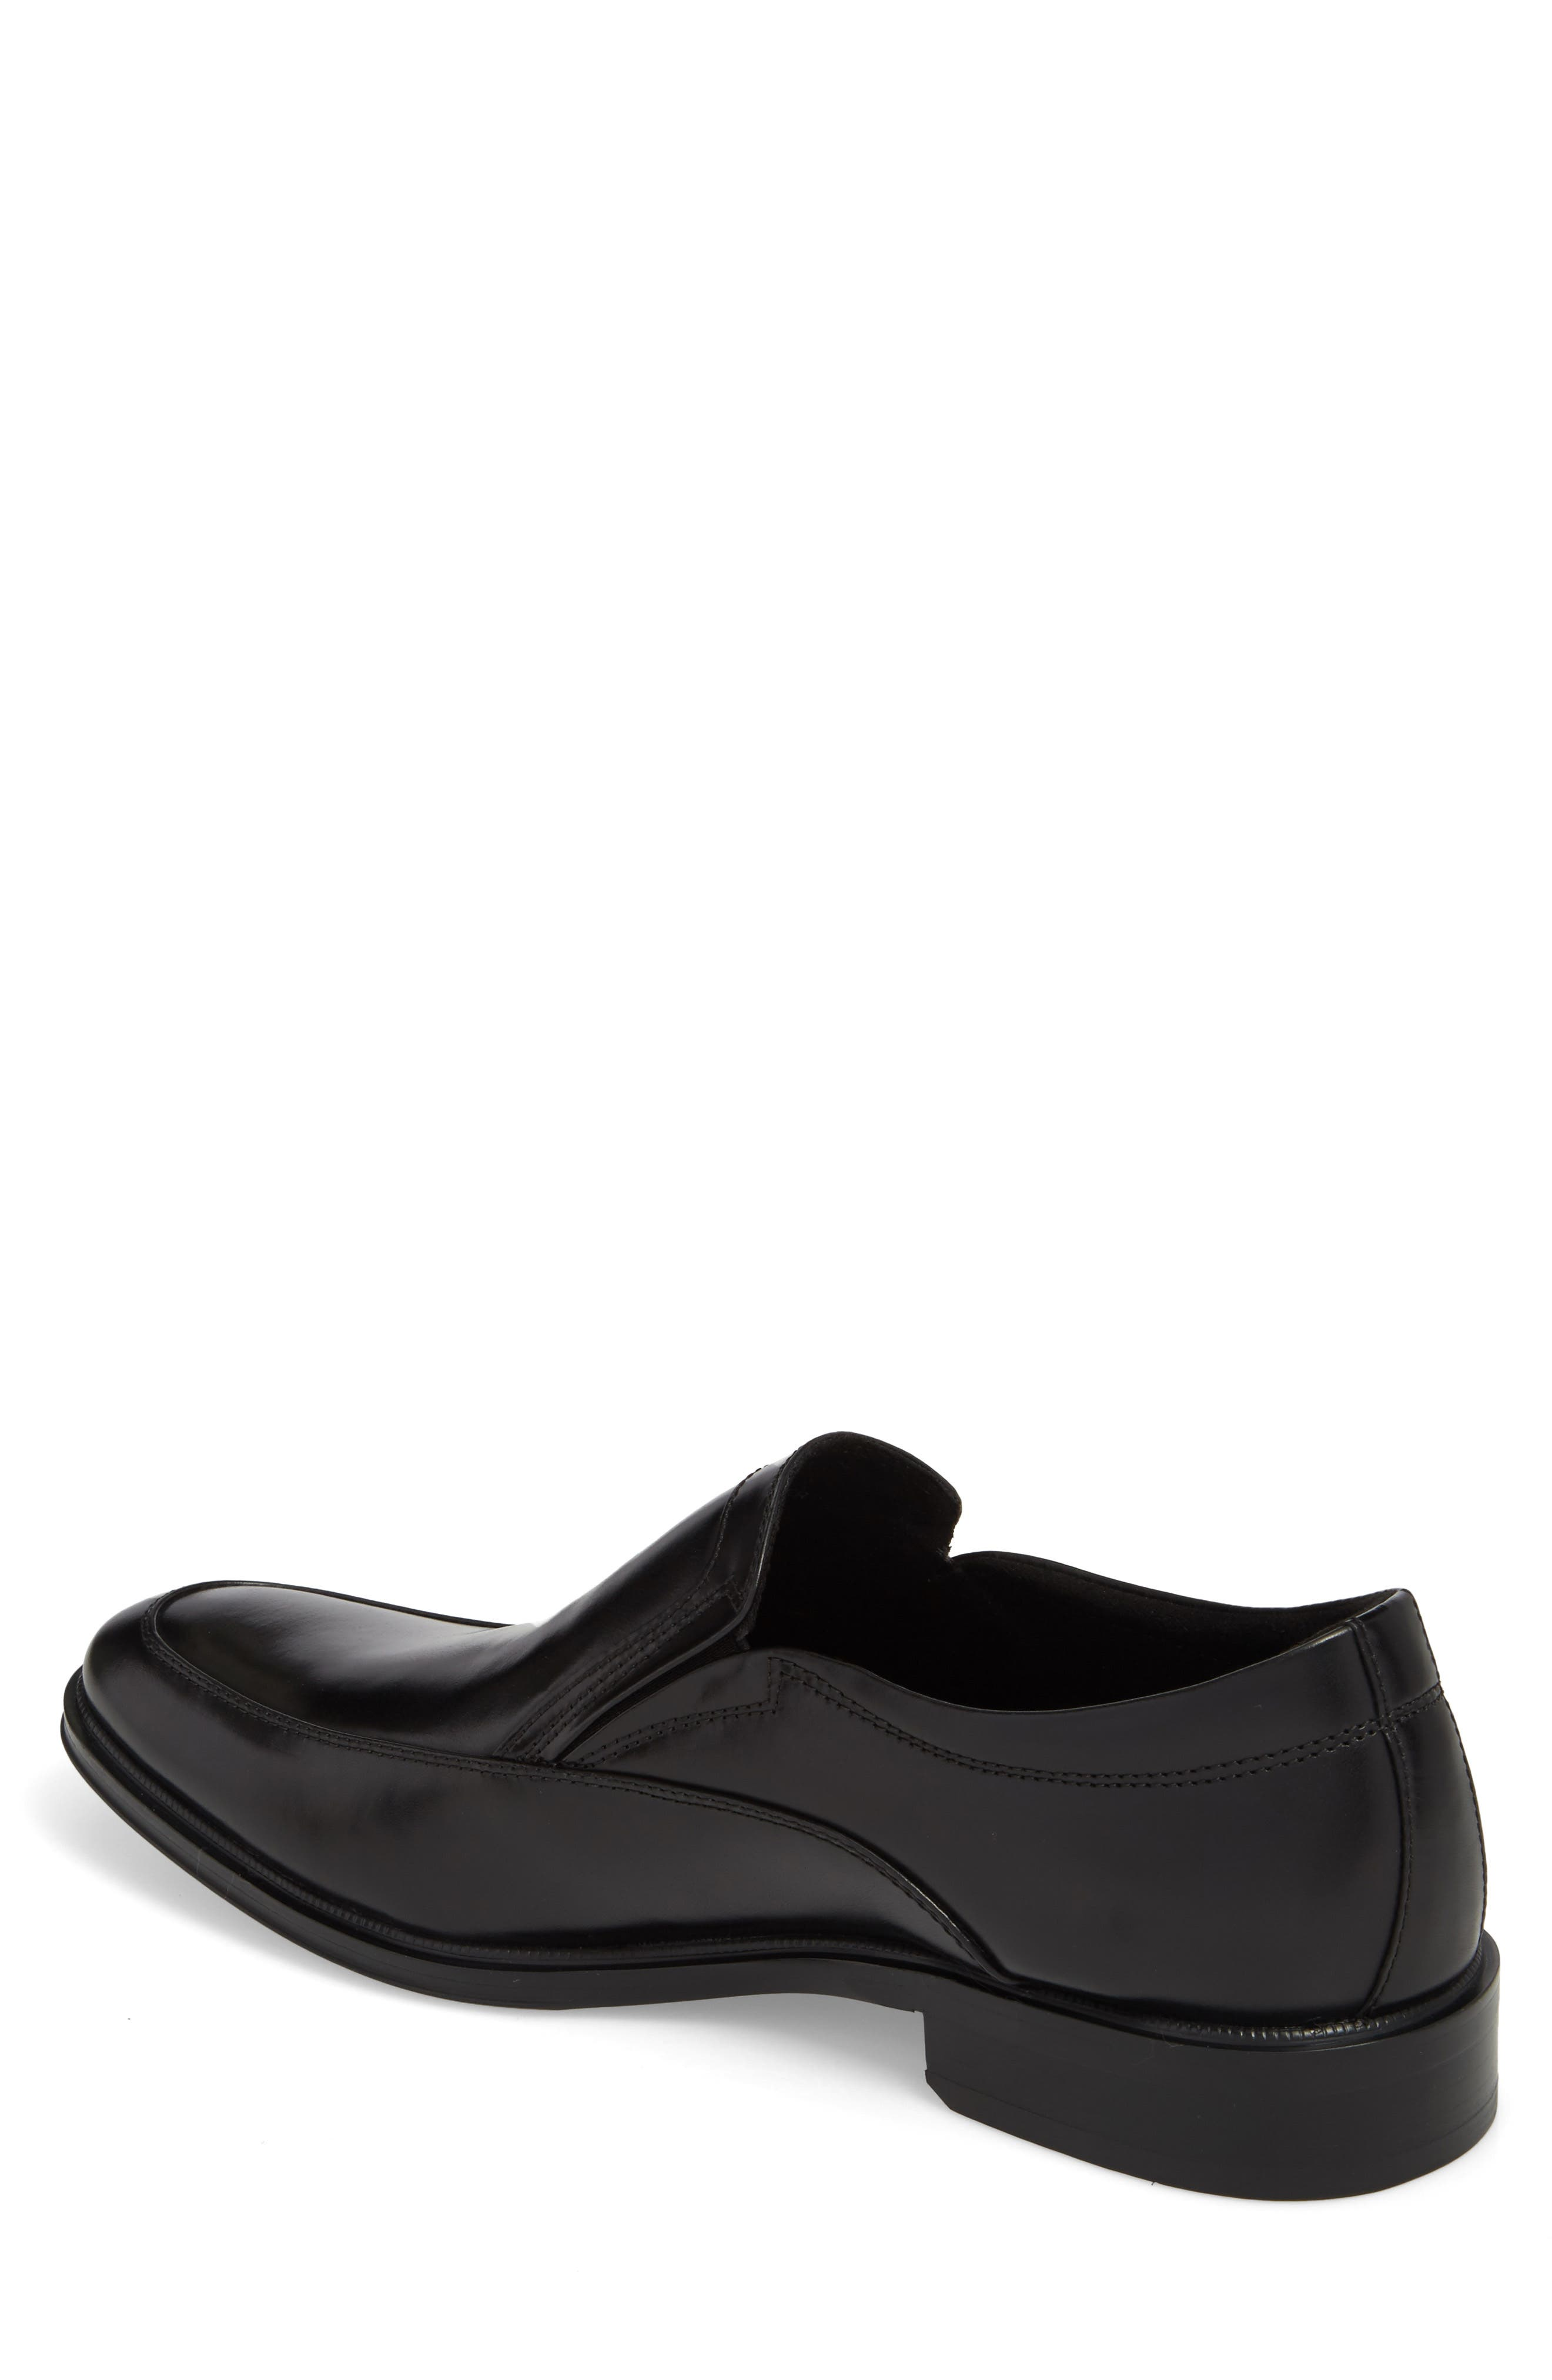 KENNETH COLE NEW YORK,                             Tully Venetian Loafer,                             Alternate thumbnail 2, color,                             BLACK LEATHER